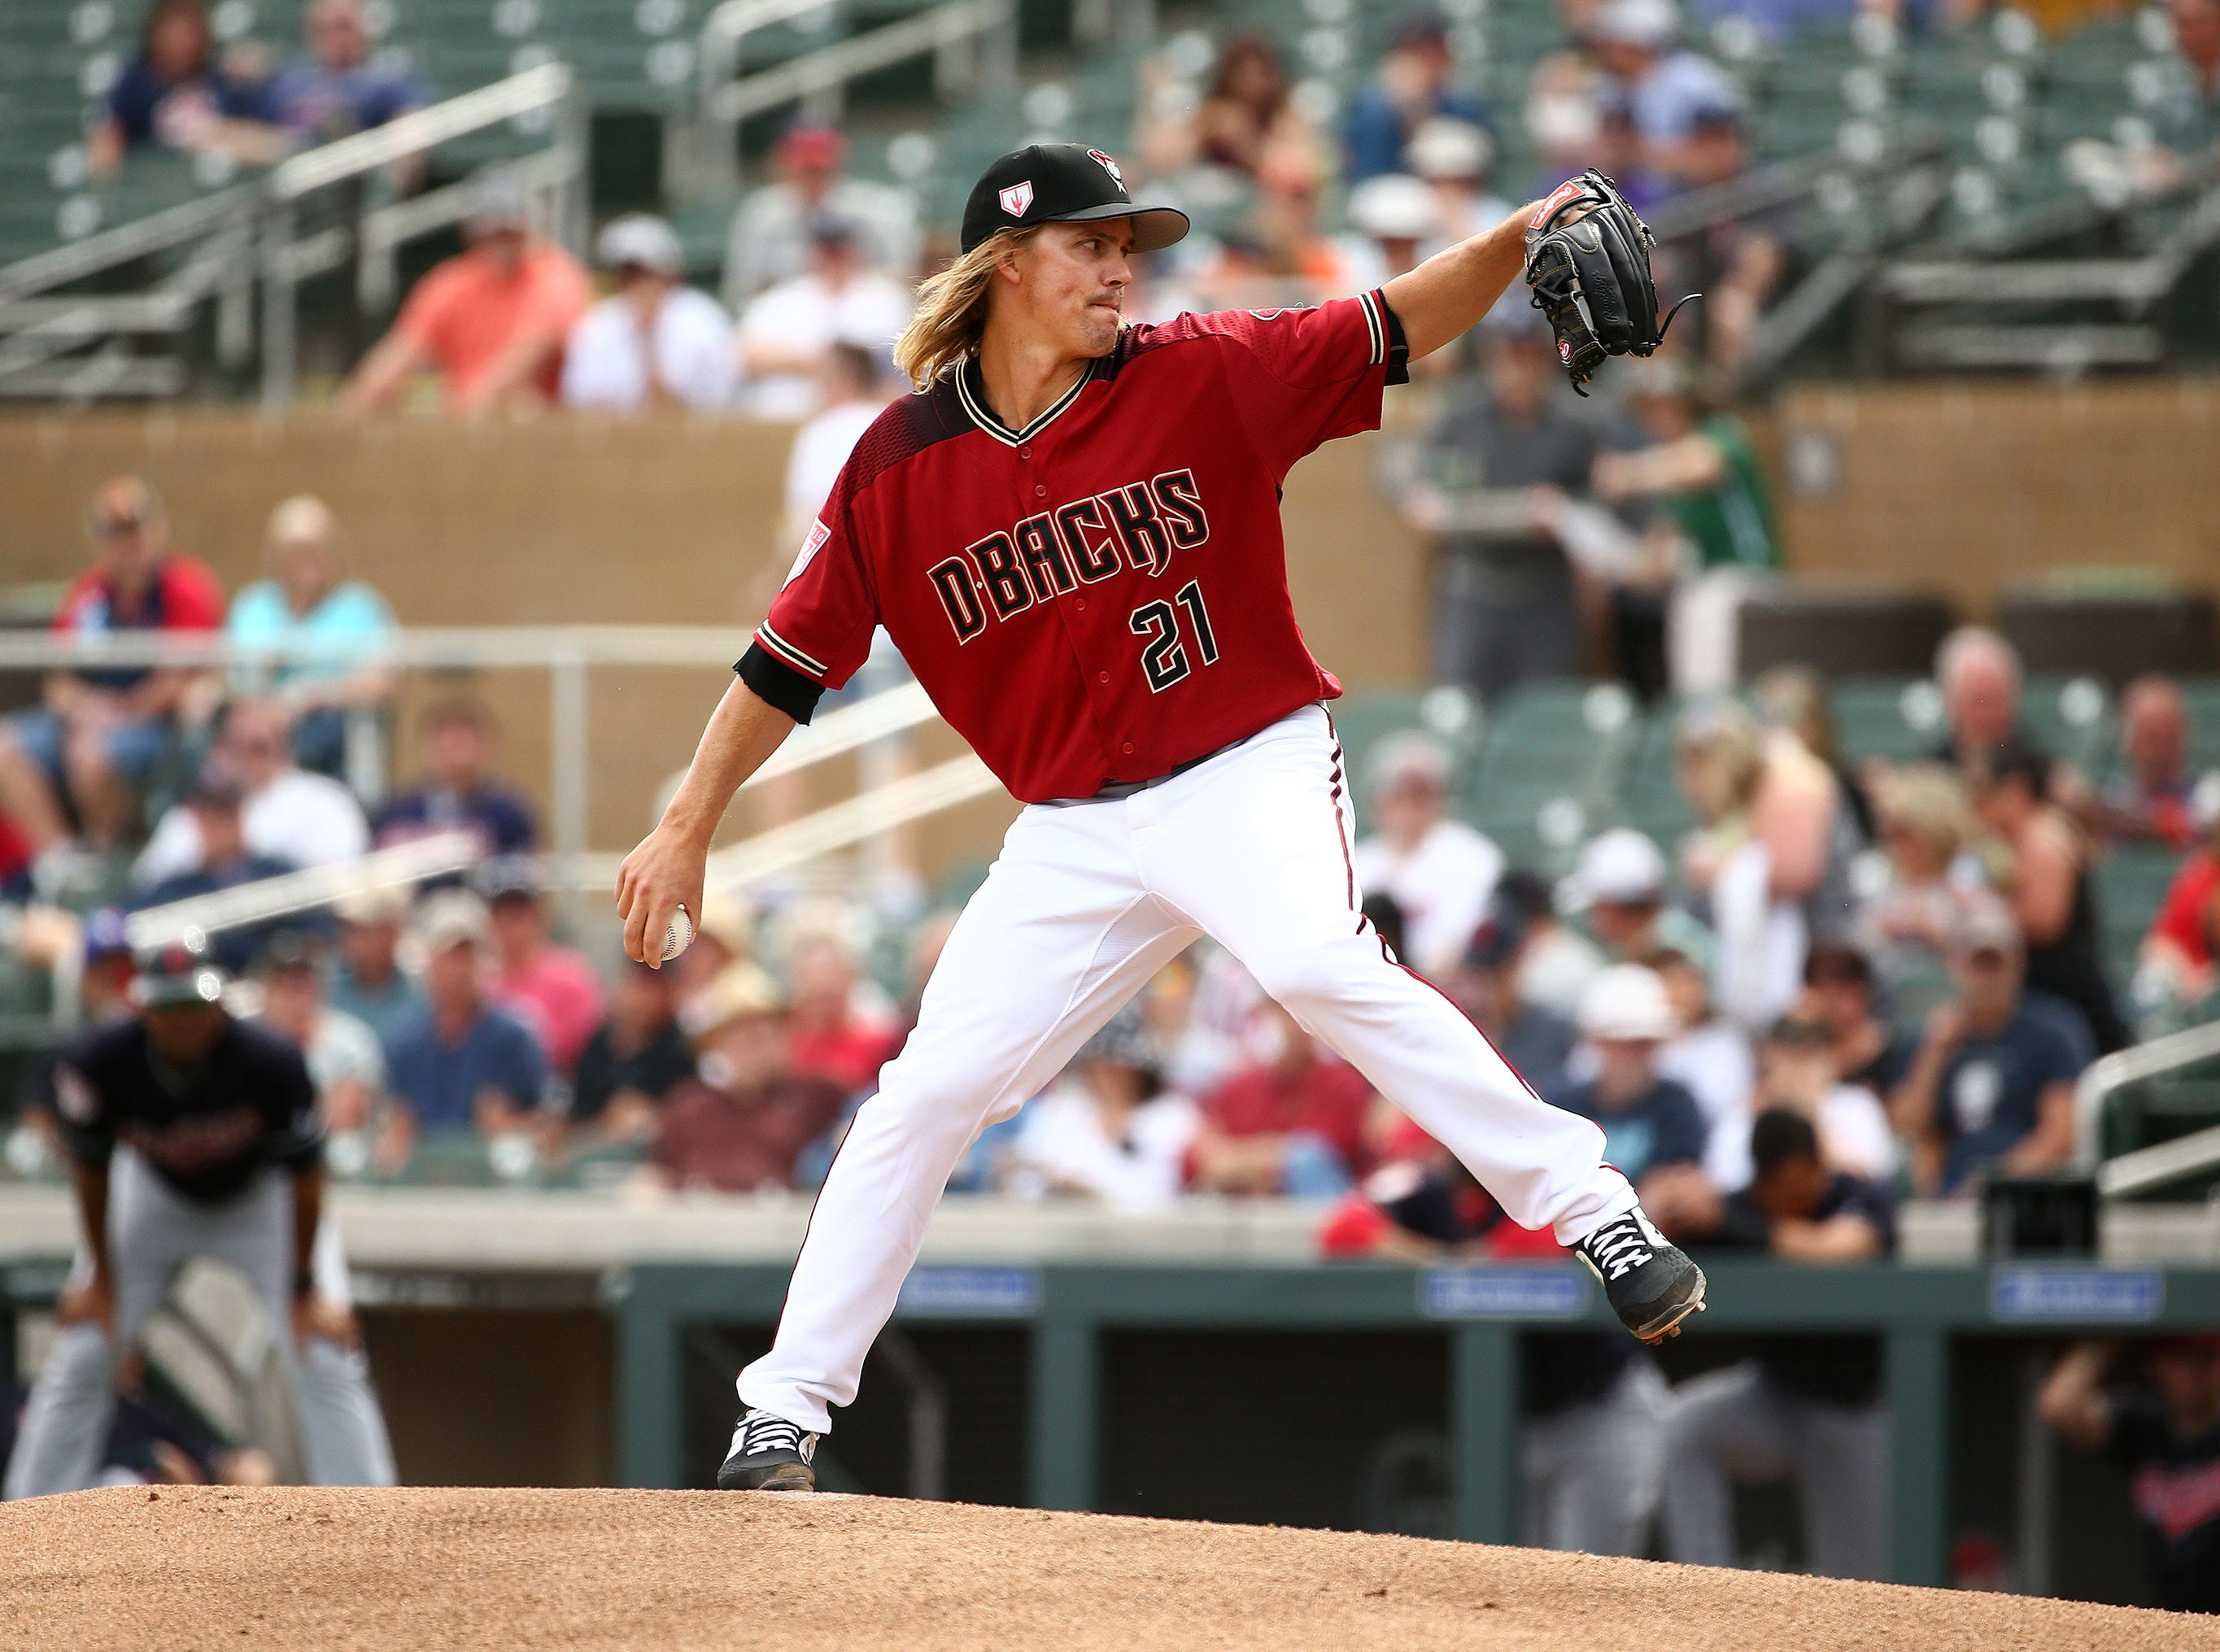 Arizona Diamondbacks pitcher Zack Greinke throws to the Cleveland Indians in the first inning during a spring training game on Mar. 7, 2019 at Salt River Fields in Scottsdale, Ariz.